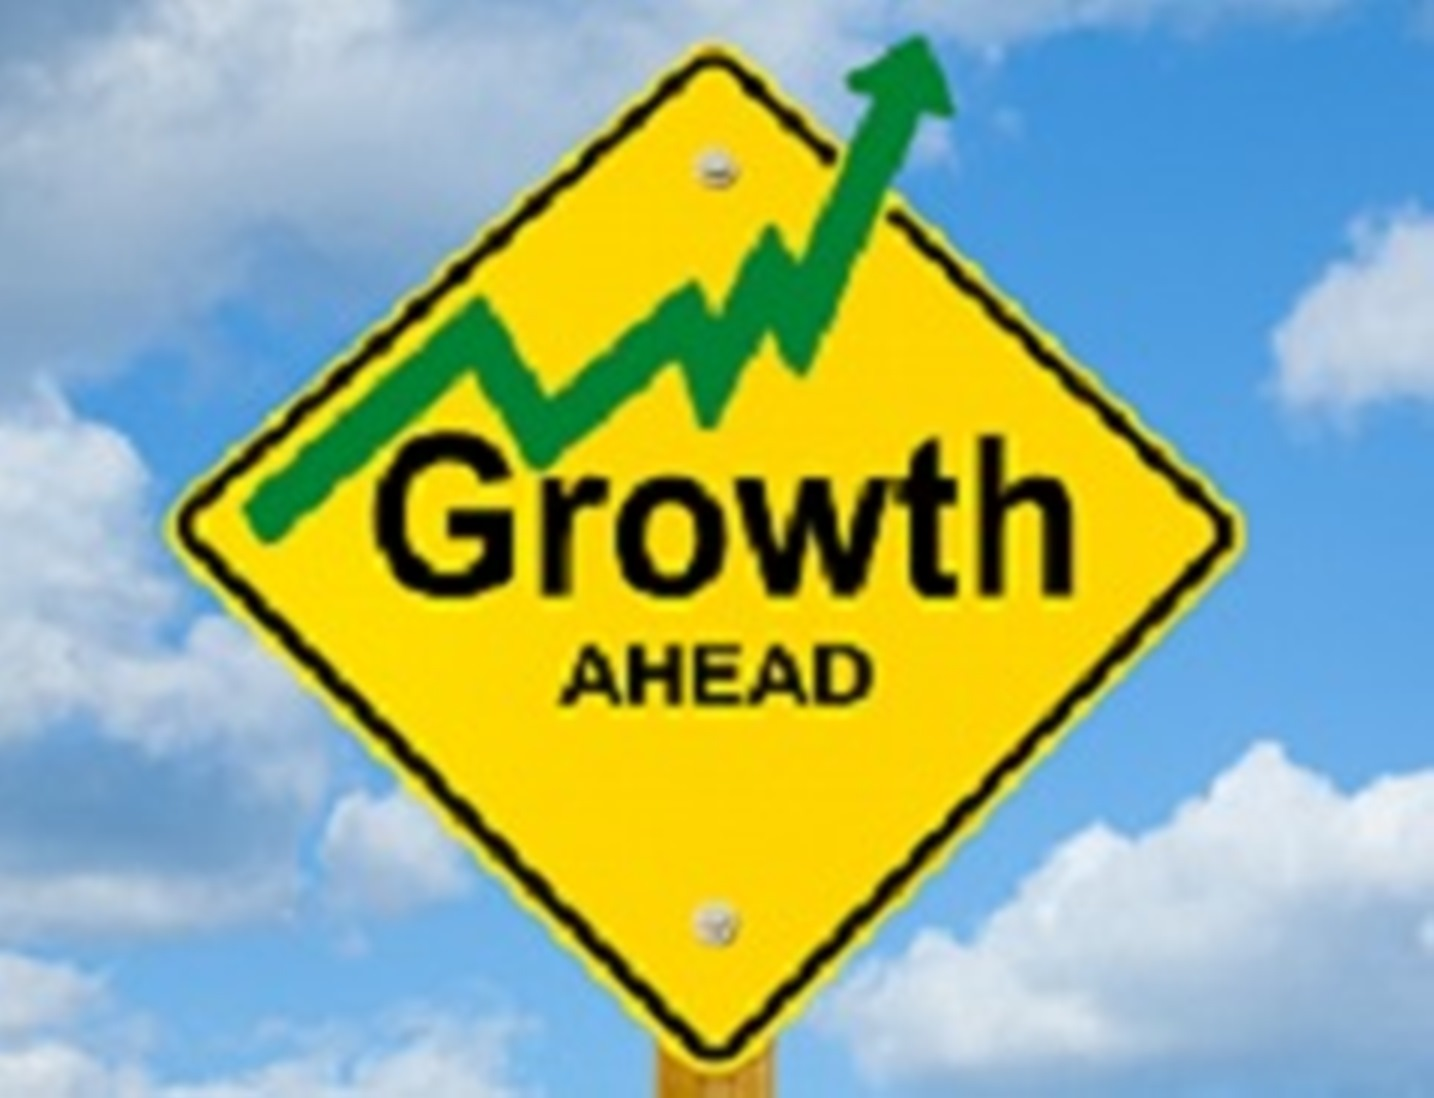 Tech M&A Monthly: 10 Ways to Increase Company Value - #1 & 2